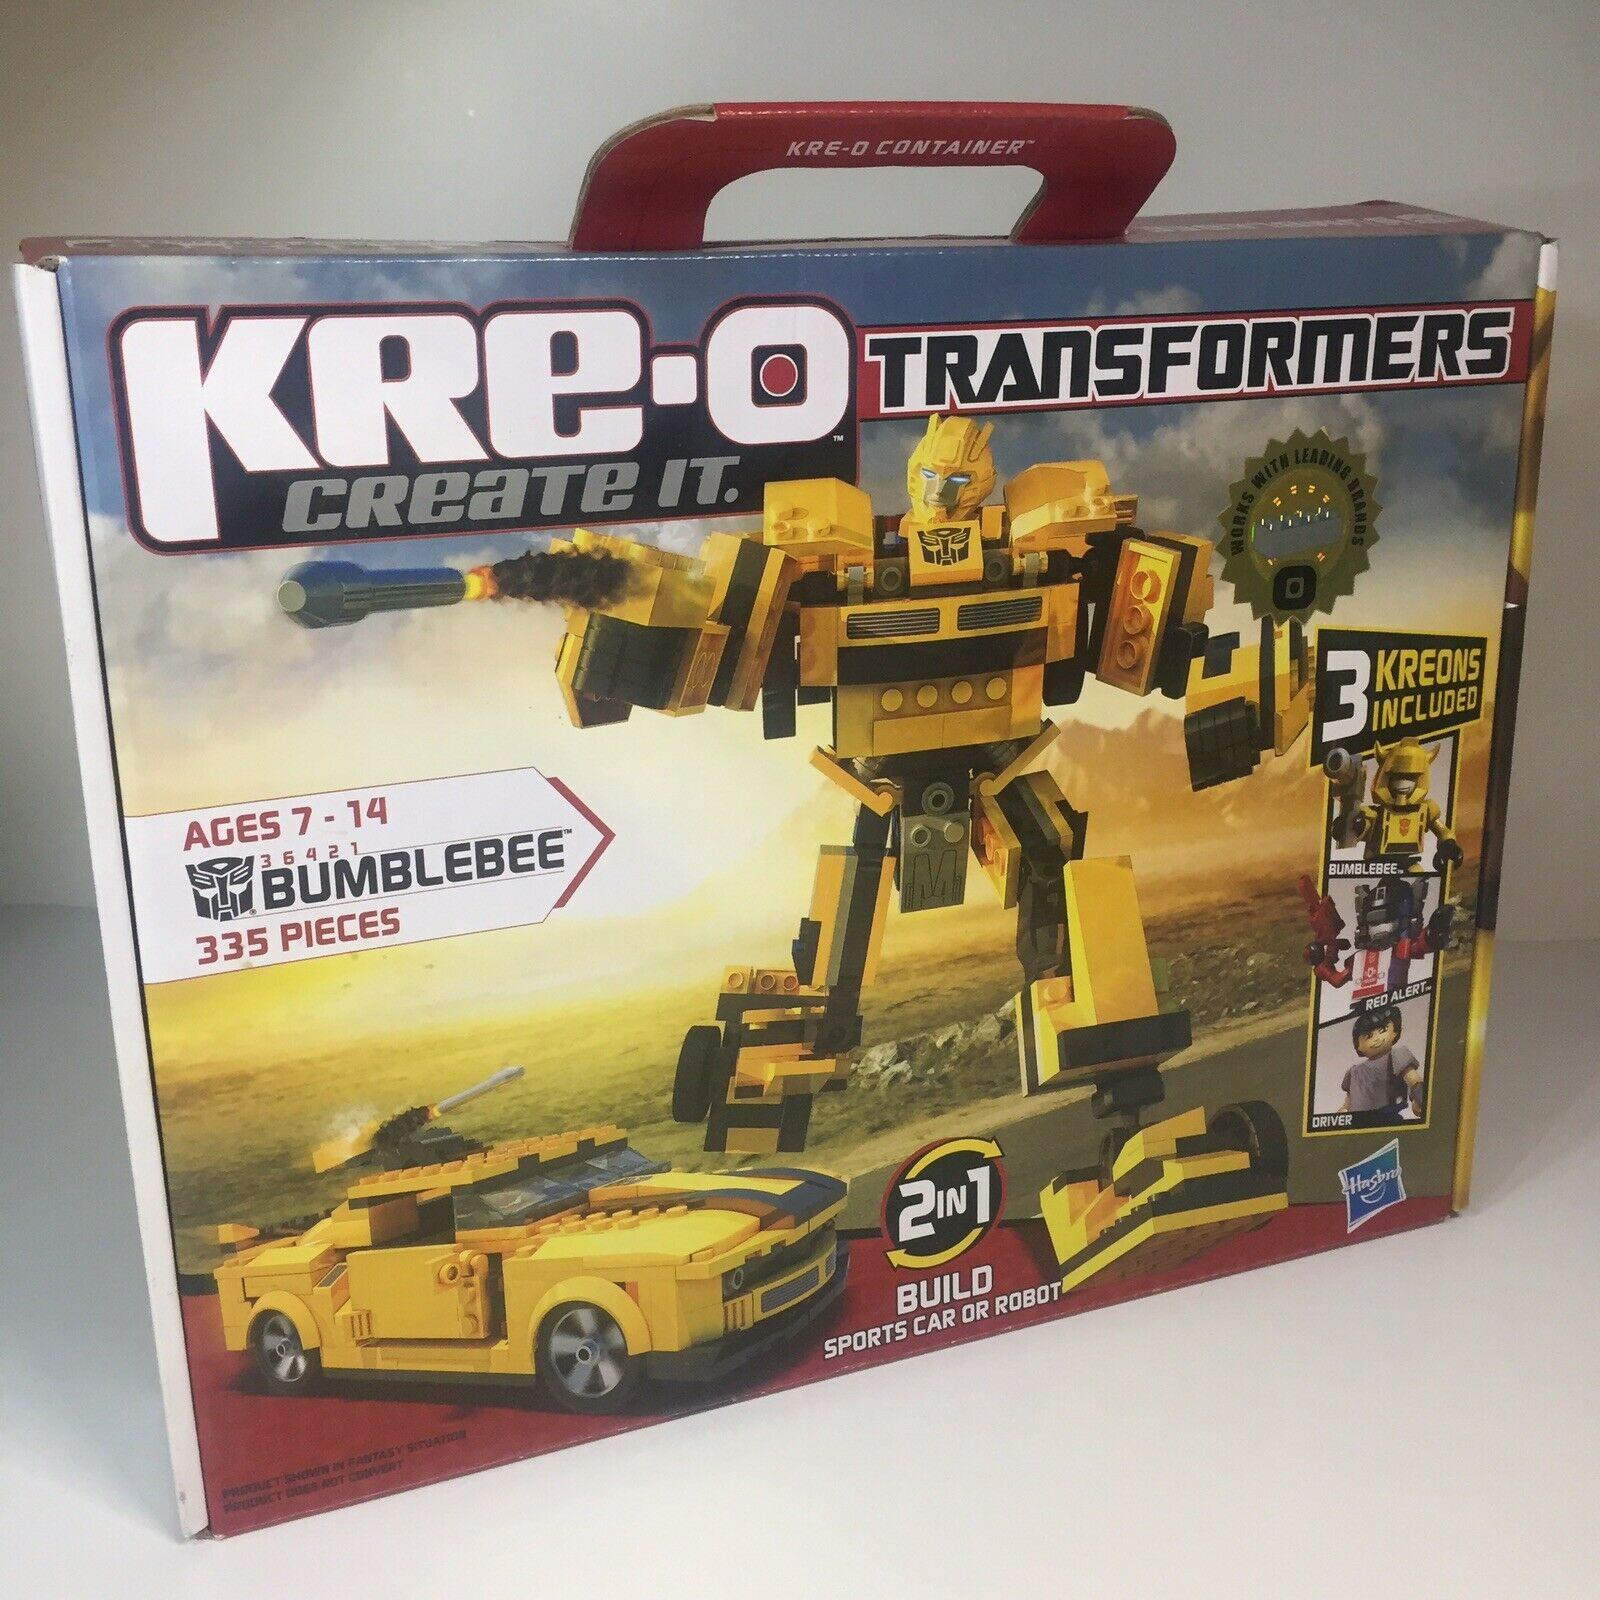 NEW Transformers KRE-O Bumblebee Bumblebee Bumblebee 2 in 1 Sports Car or Robot 3 Kreons 36421 8a4667